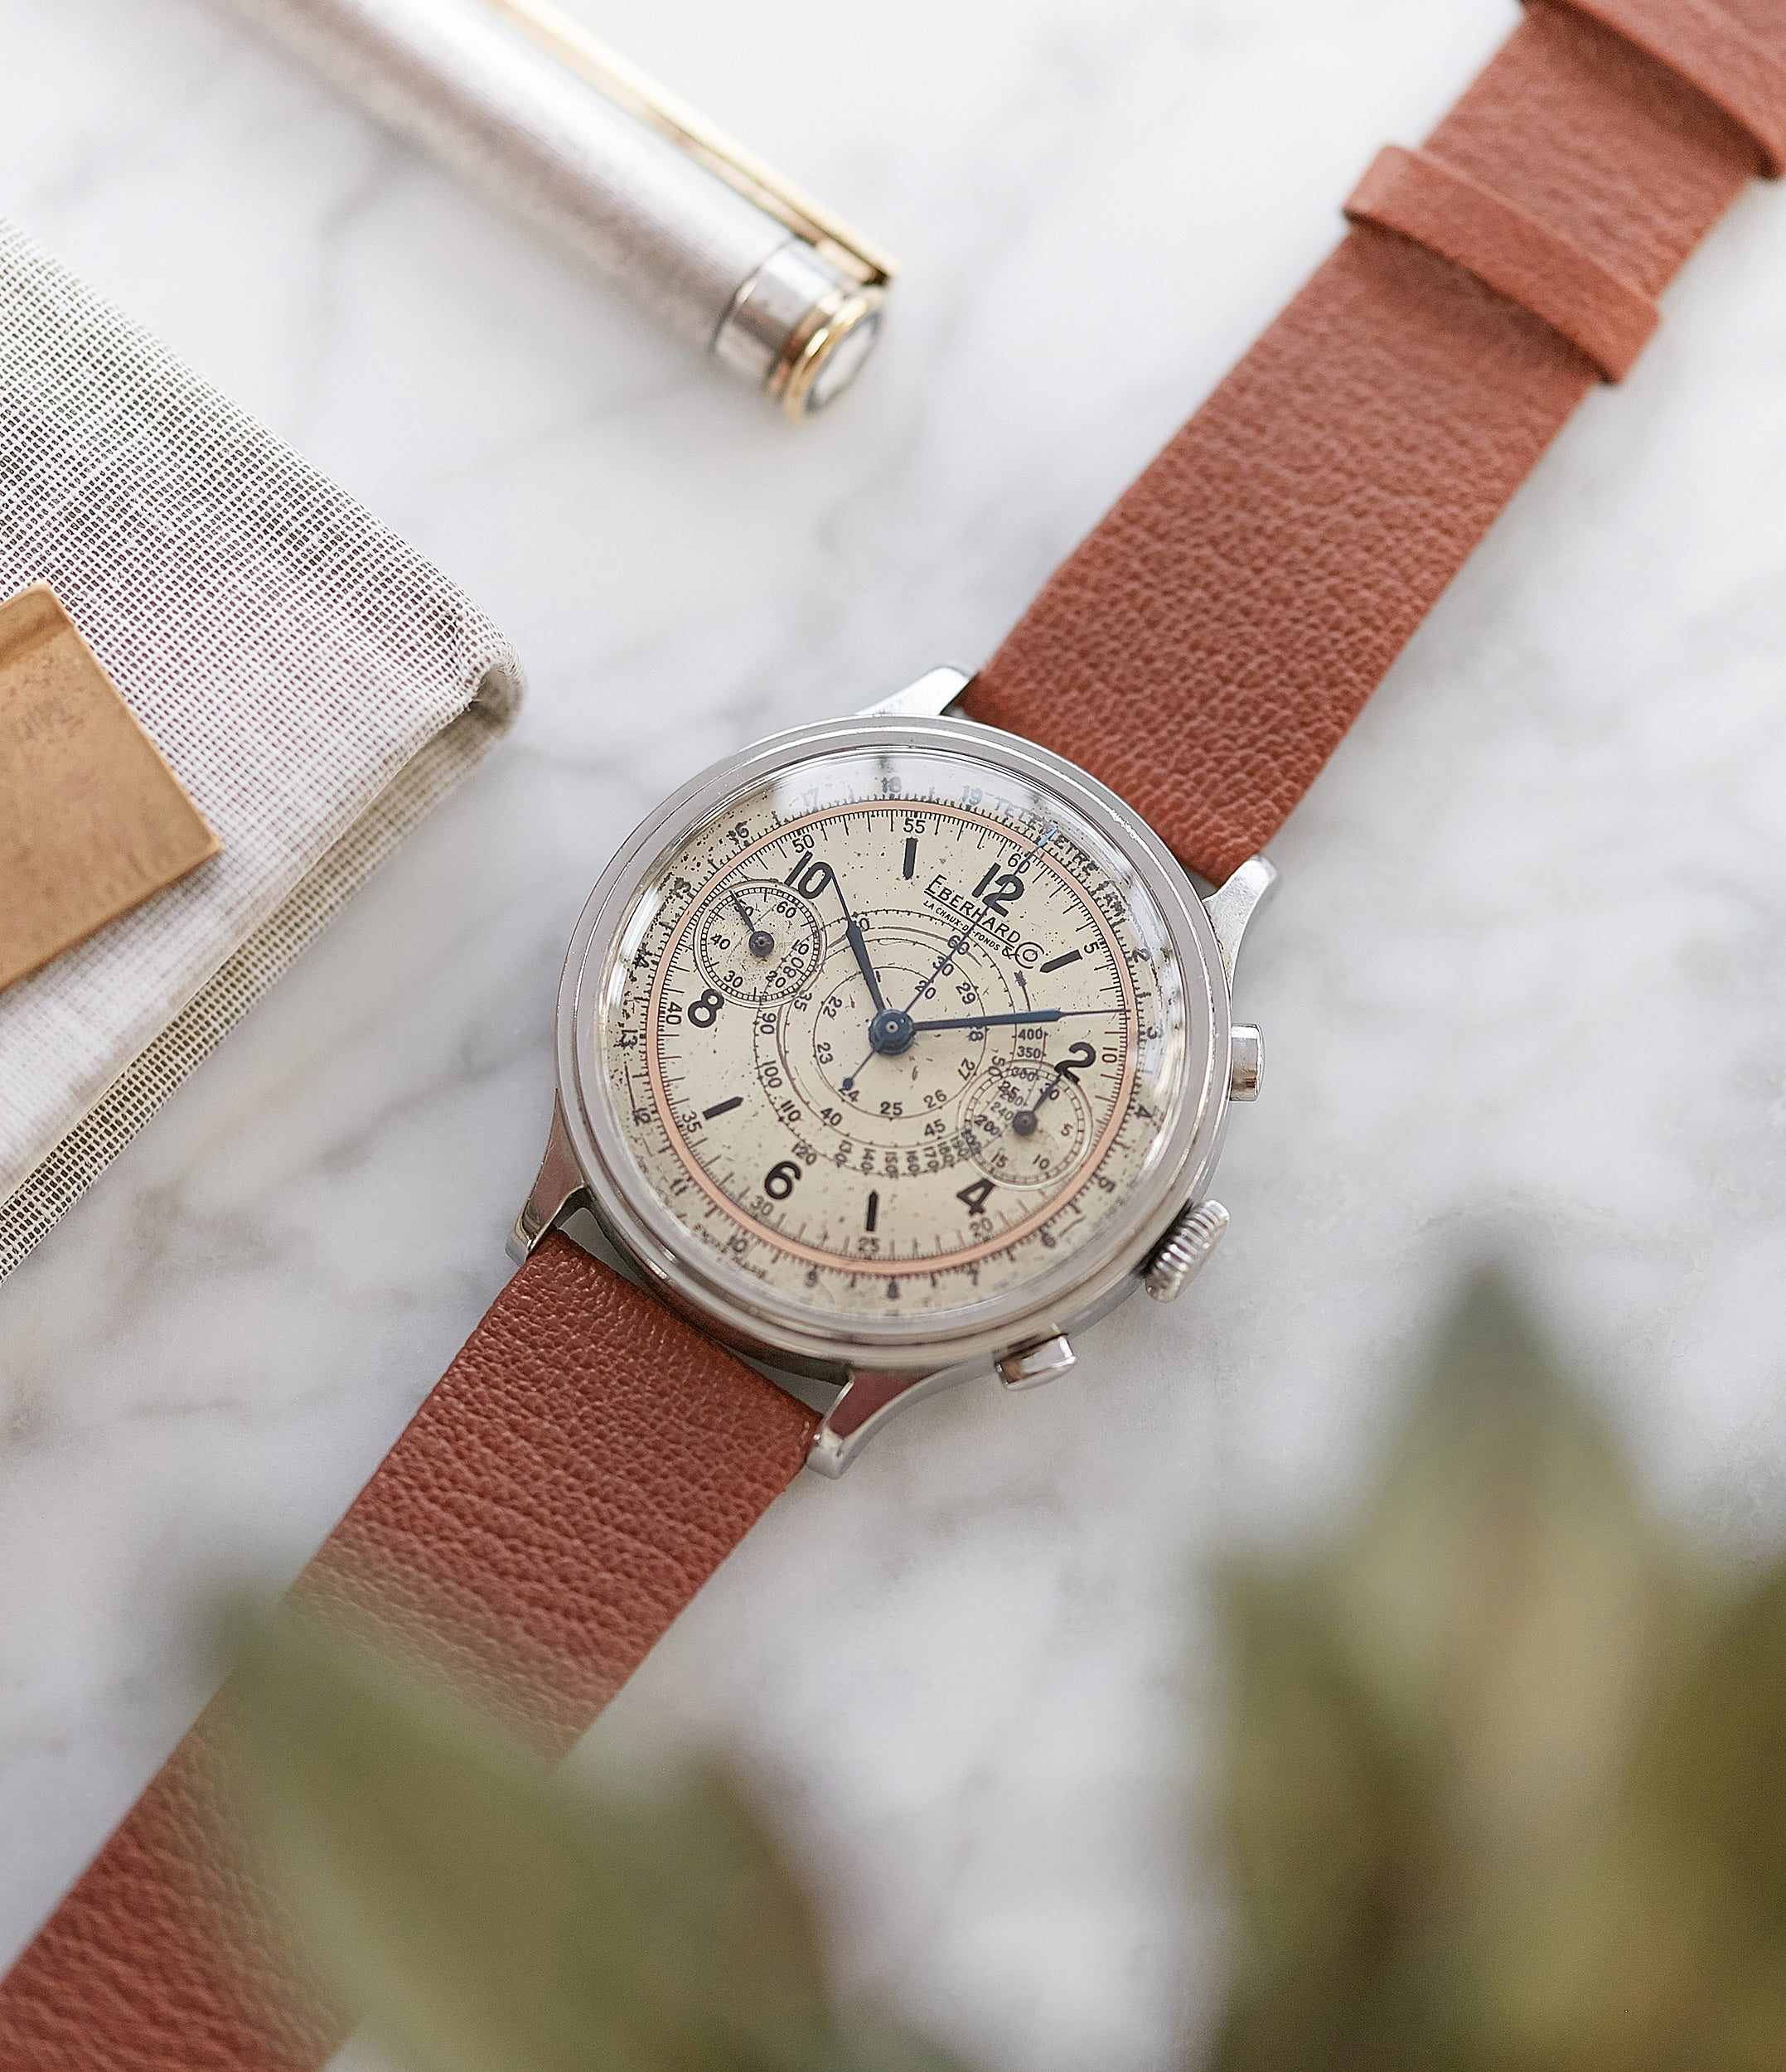 rare Eberhard Pre-Extra Fort Chronograph copper ring dial steel sport watch for sale online at A Collected Man London UK specialist of rare watches